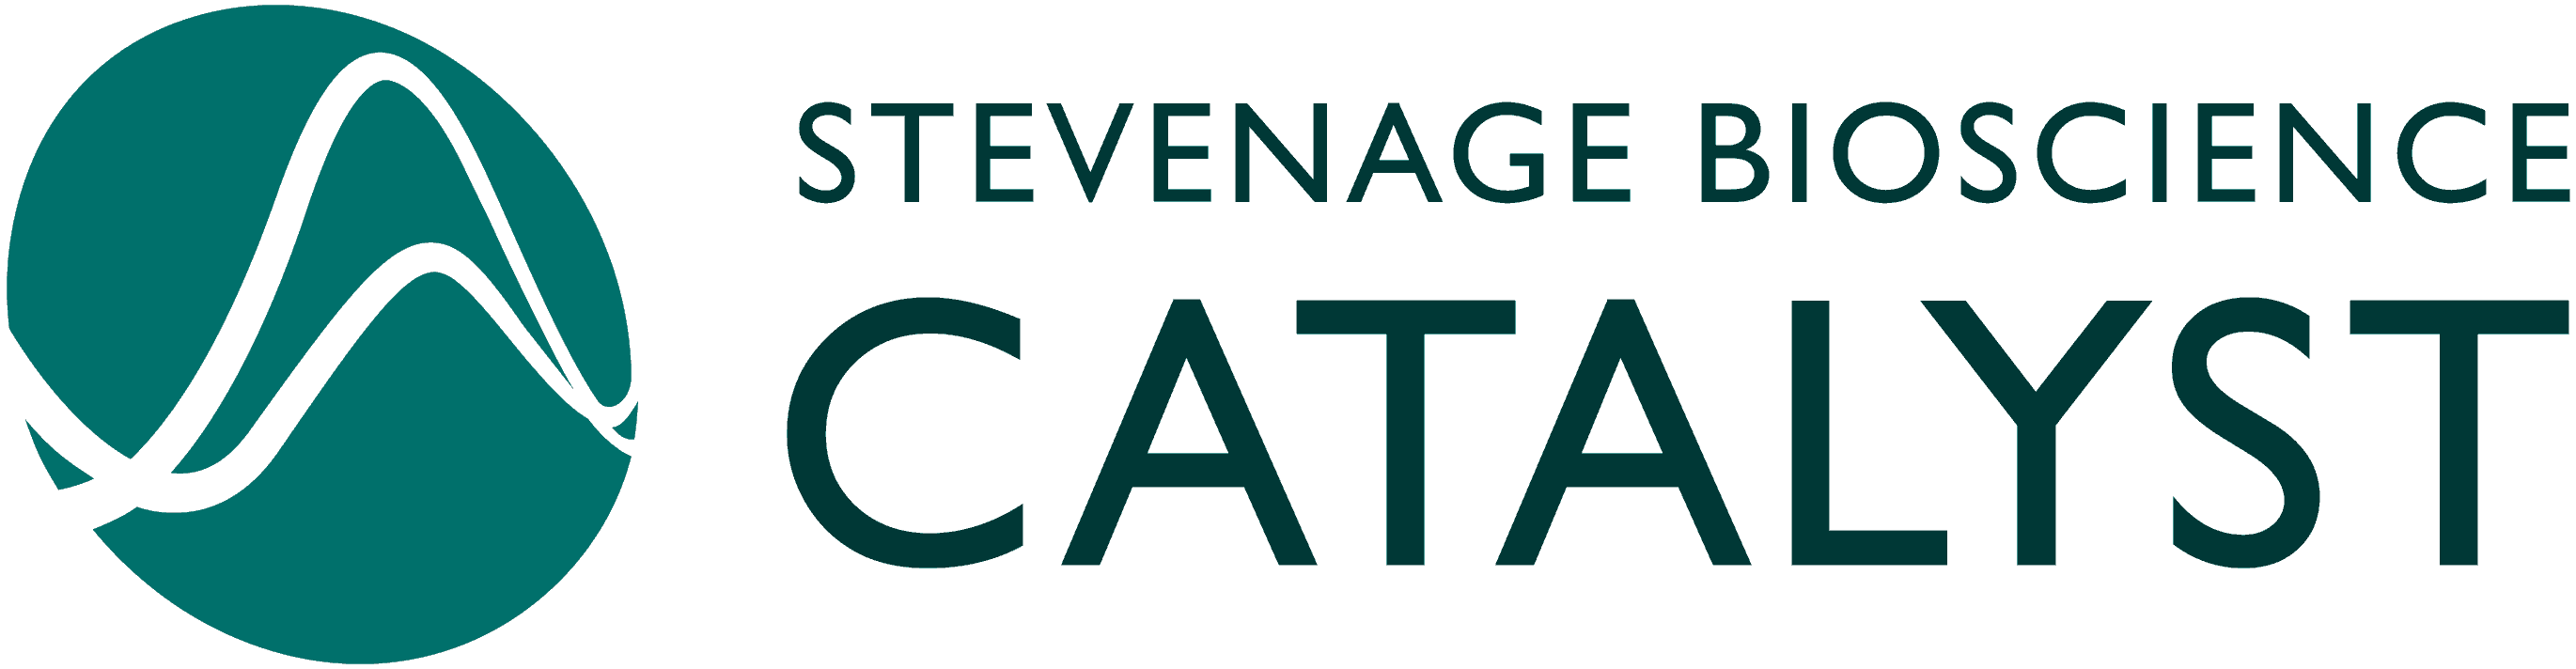 Stevenage Bioscience Catalyst logo